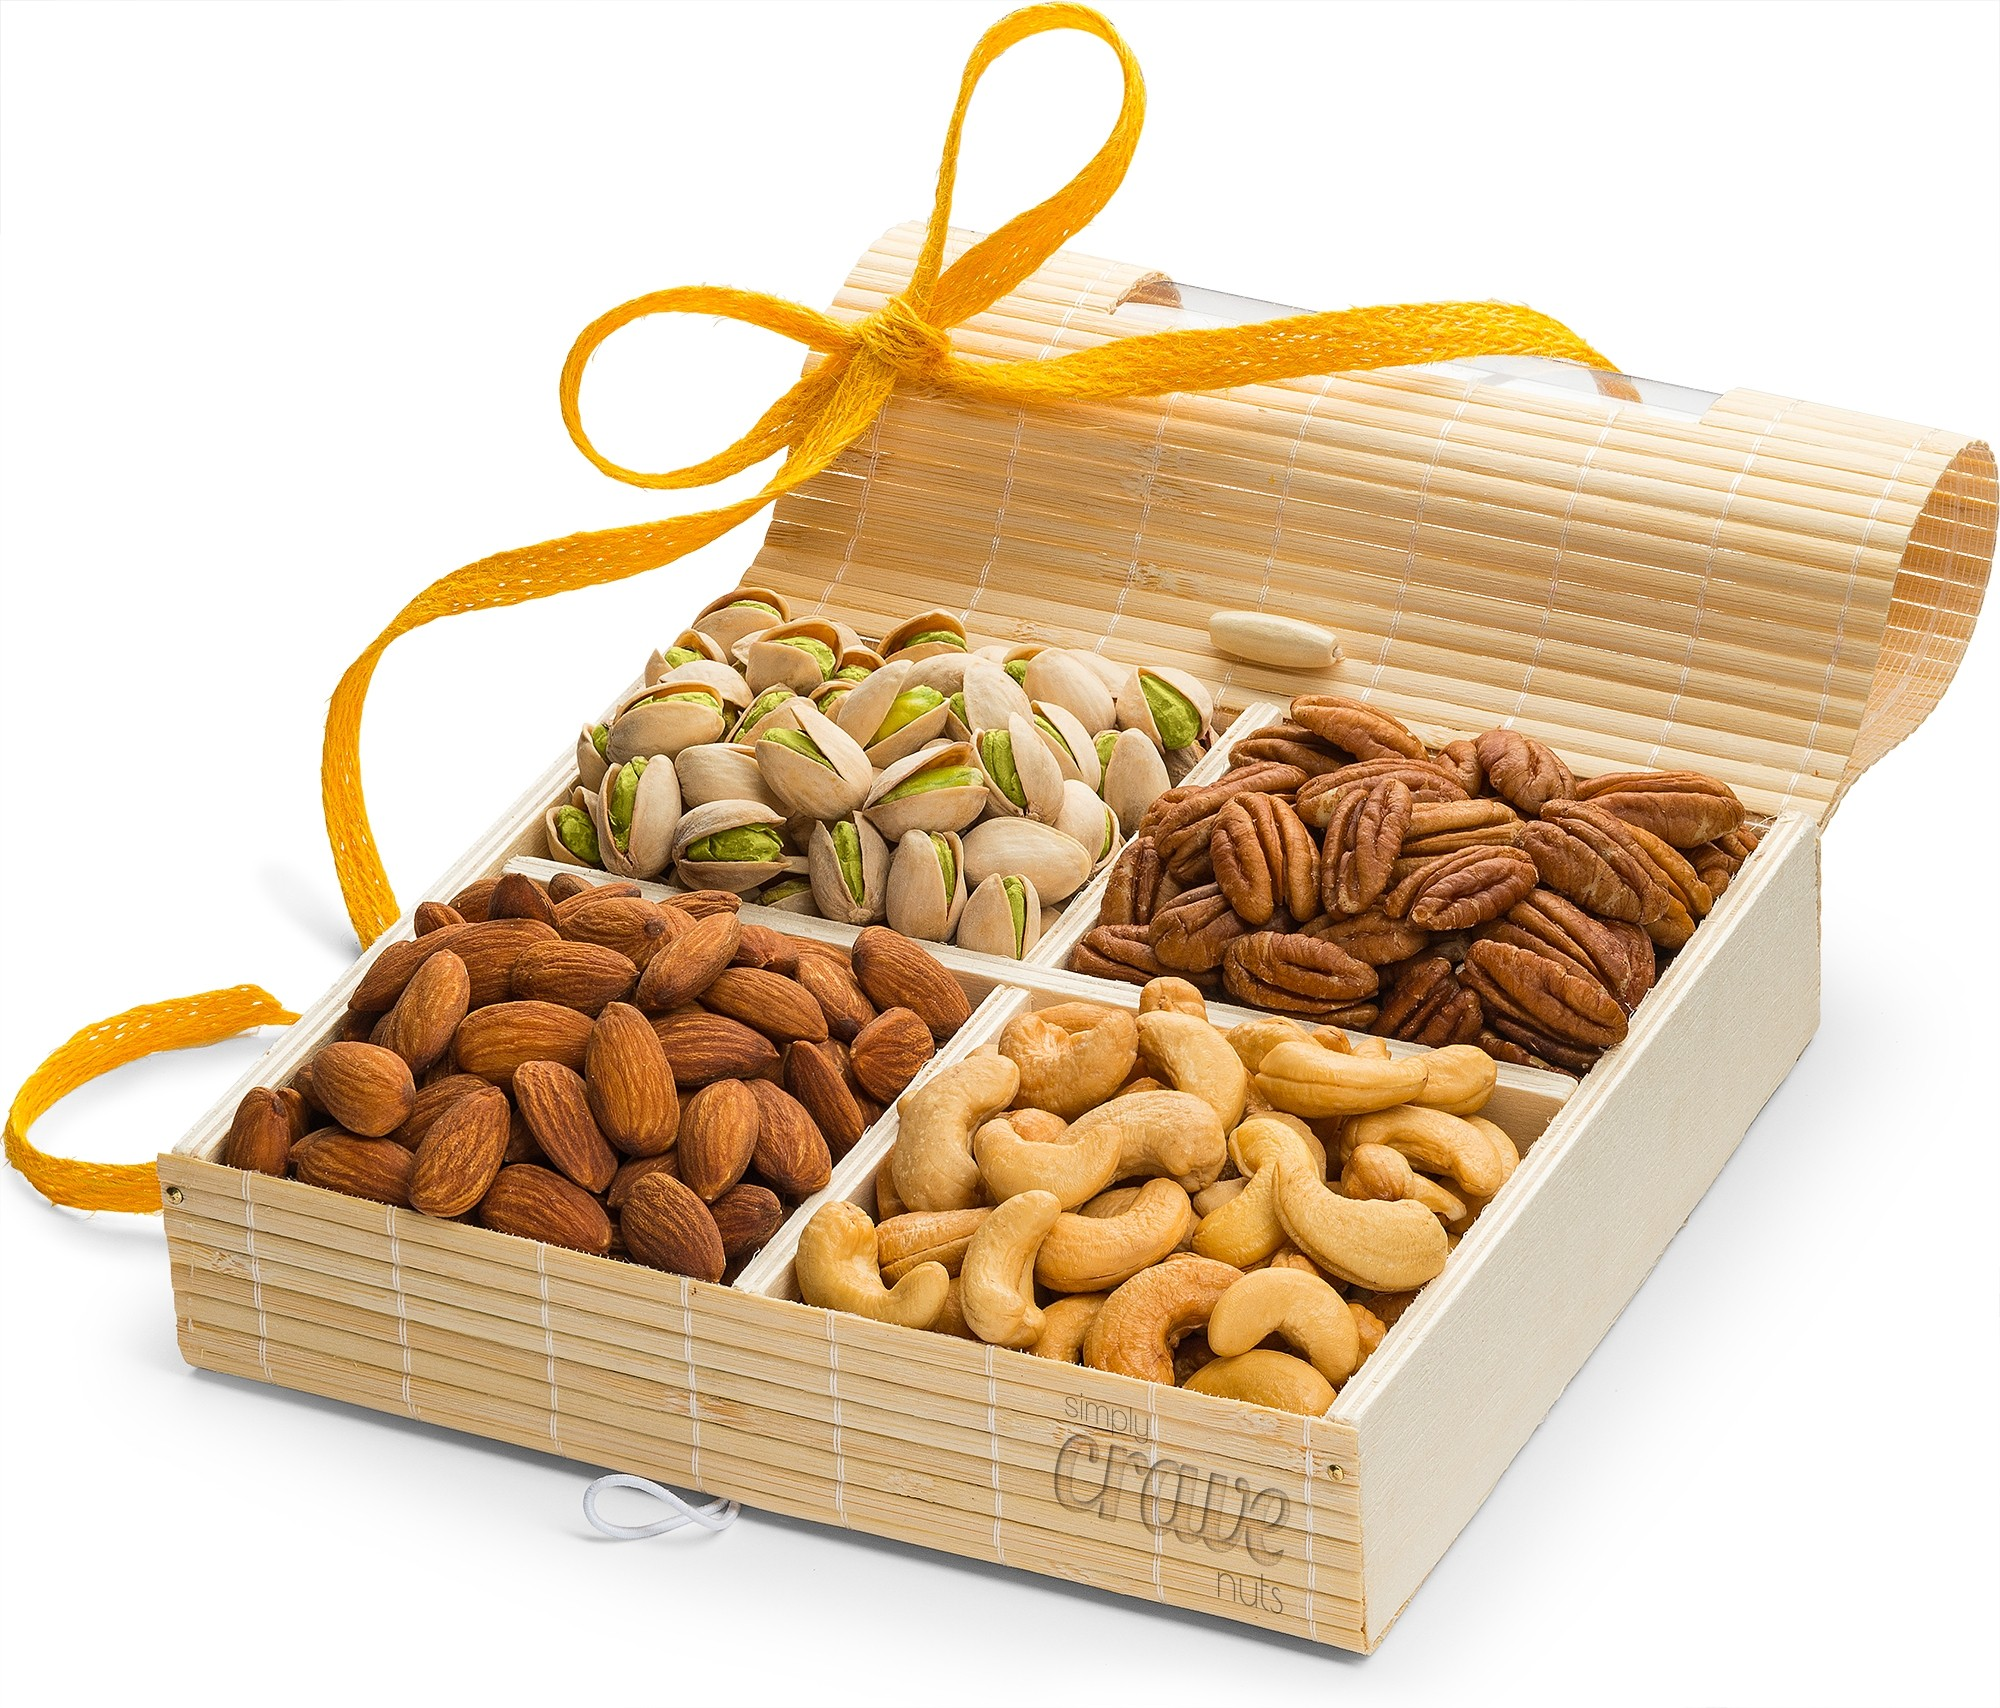 Simply Crave Nut Gift Baskets, Gourmet Food Gift, Nuts Tray Gift Assortment, Classic Unsalted (Large)